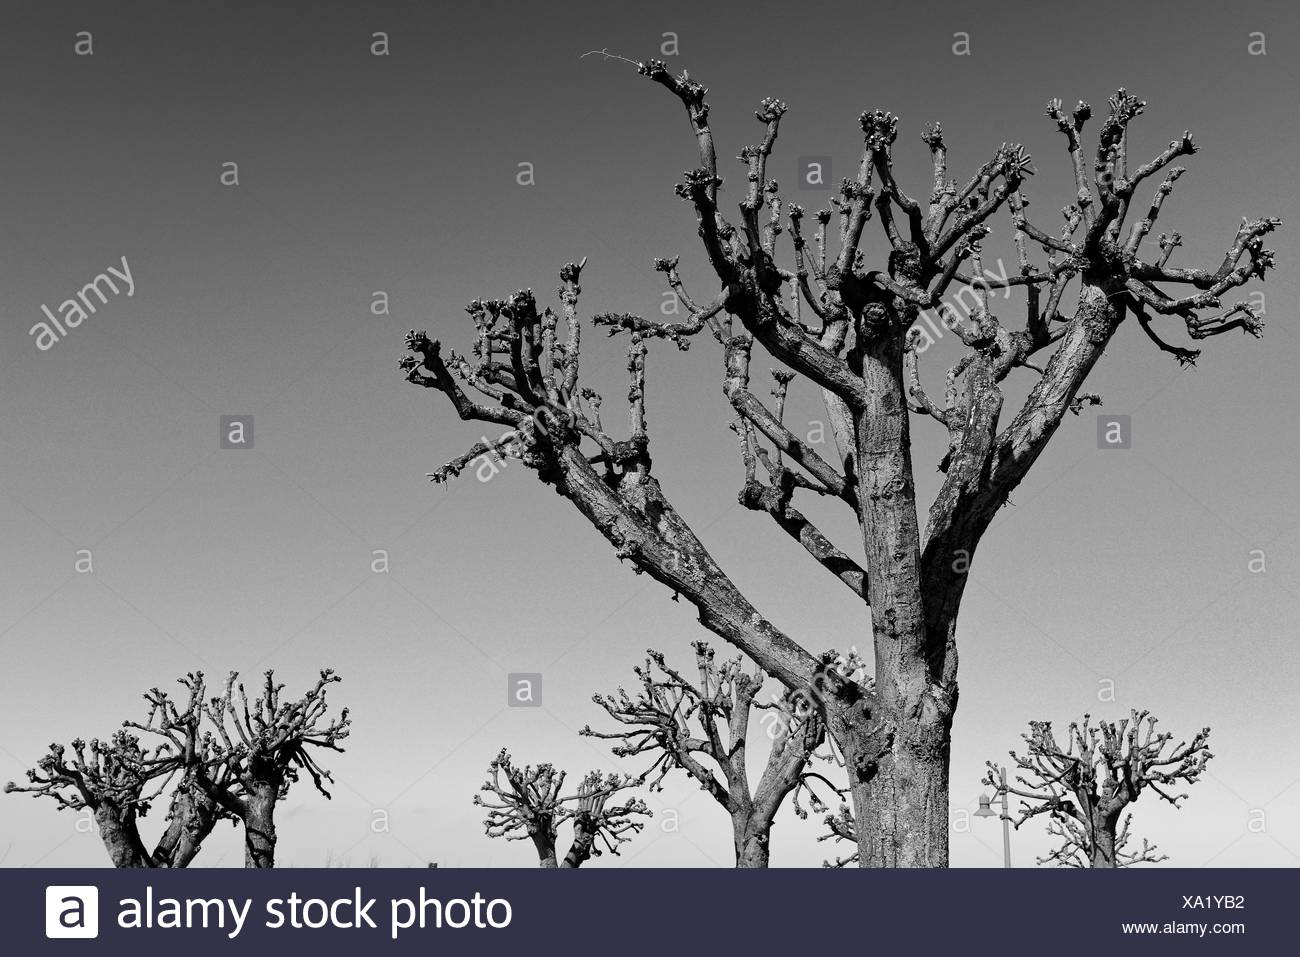 Trees | Seaside resort Ahlbeck, Germany - Stock Image